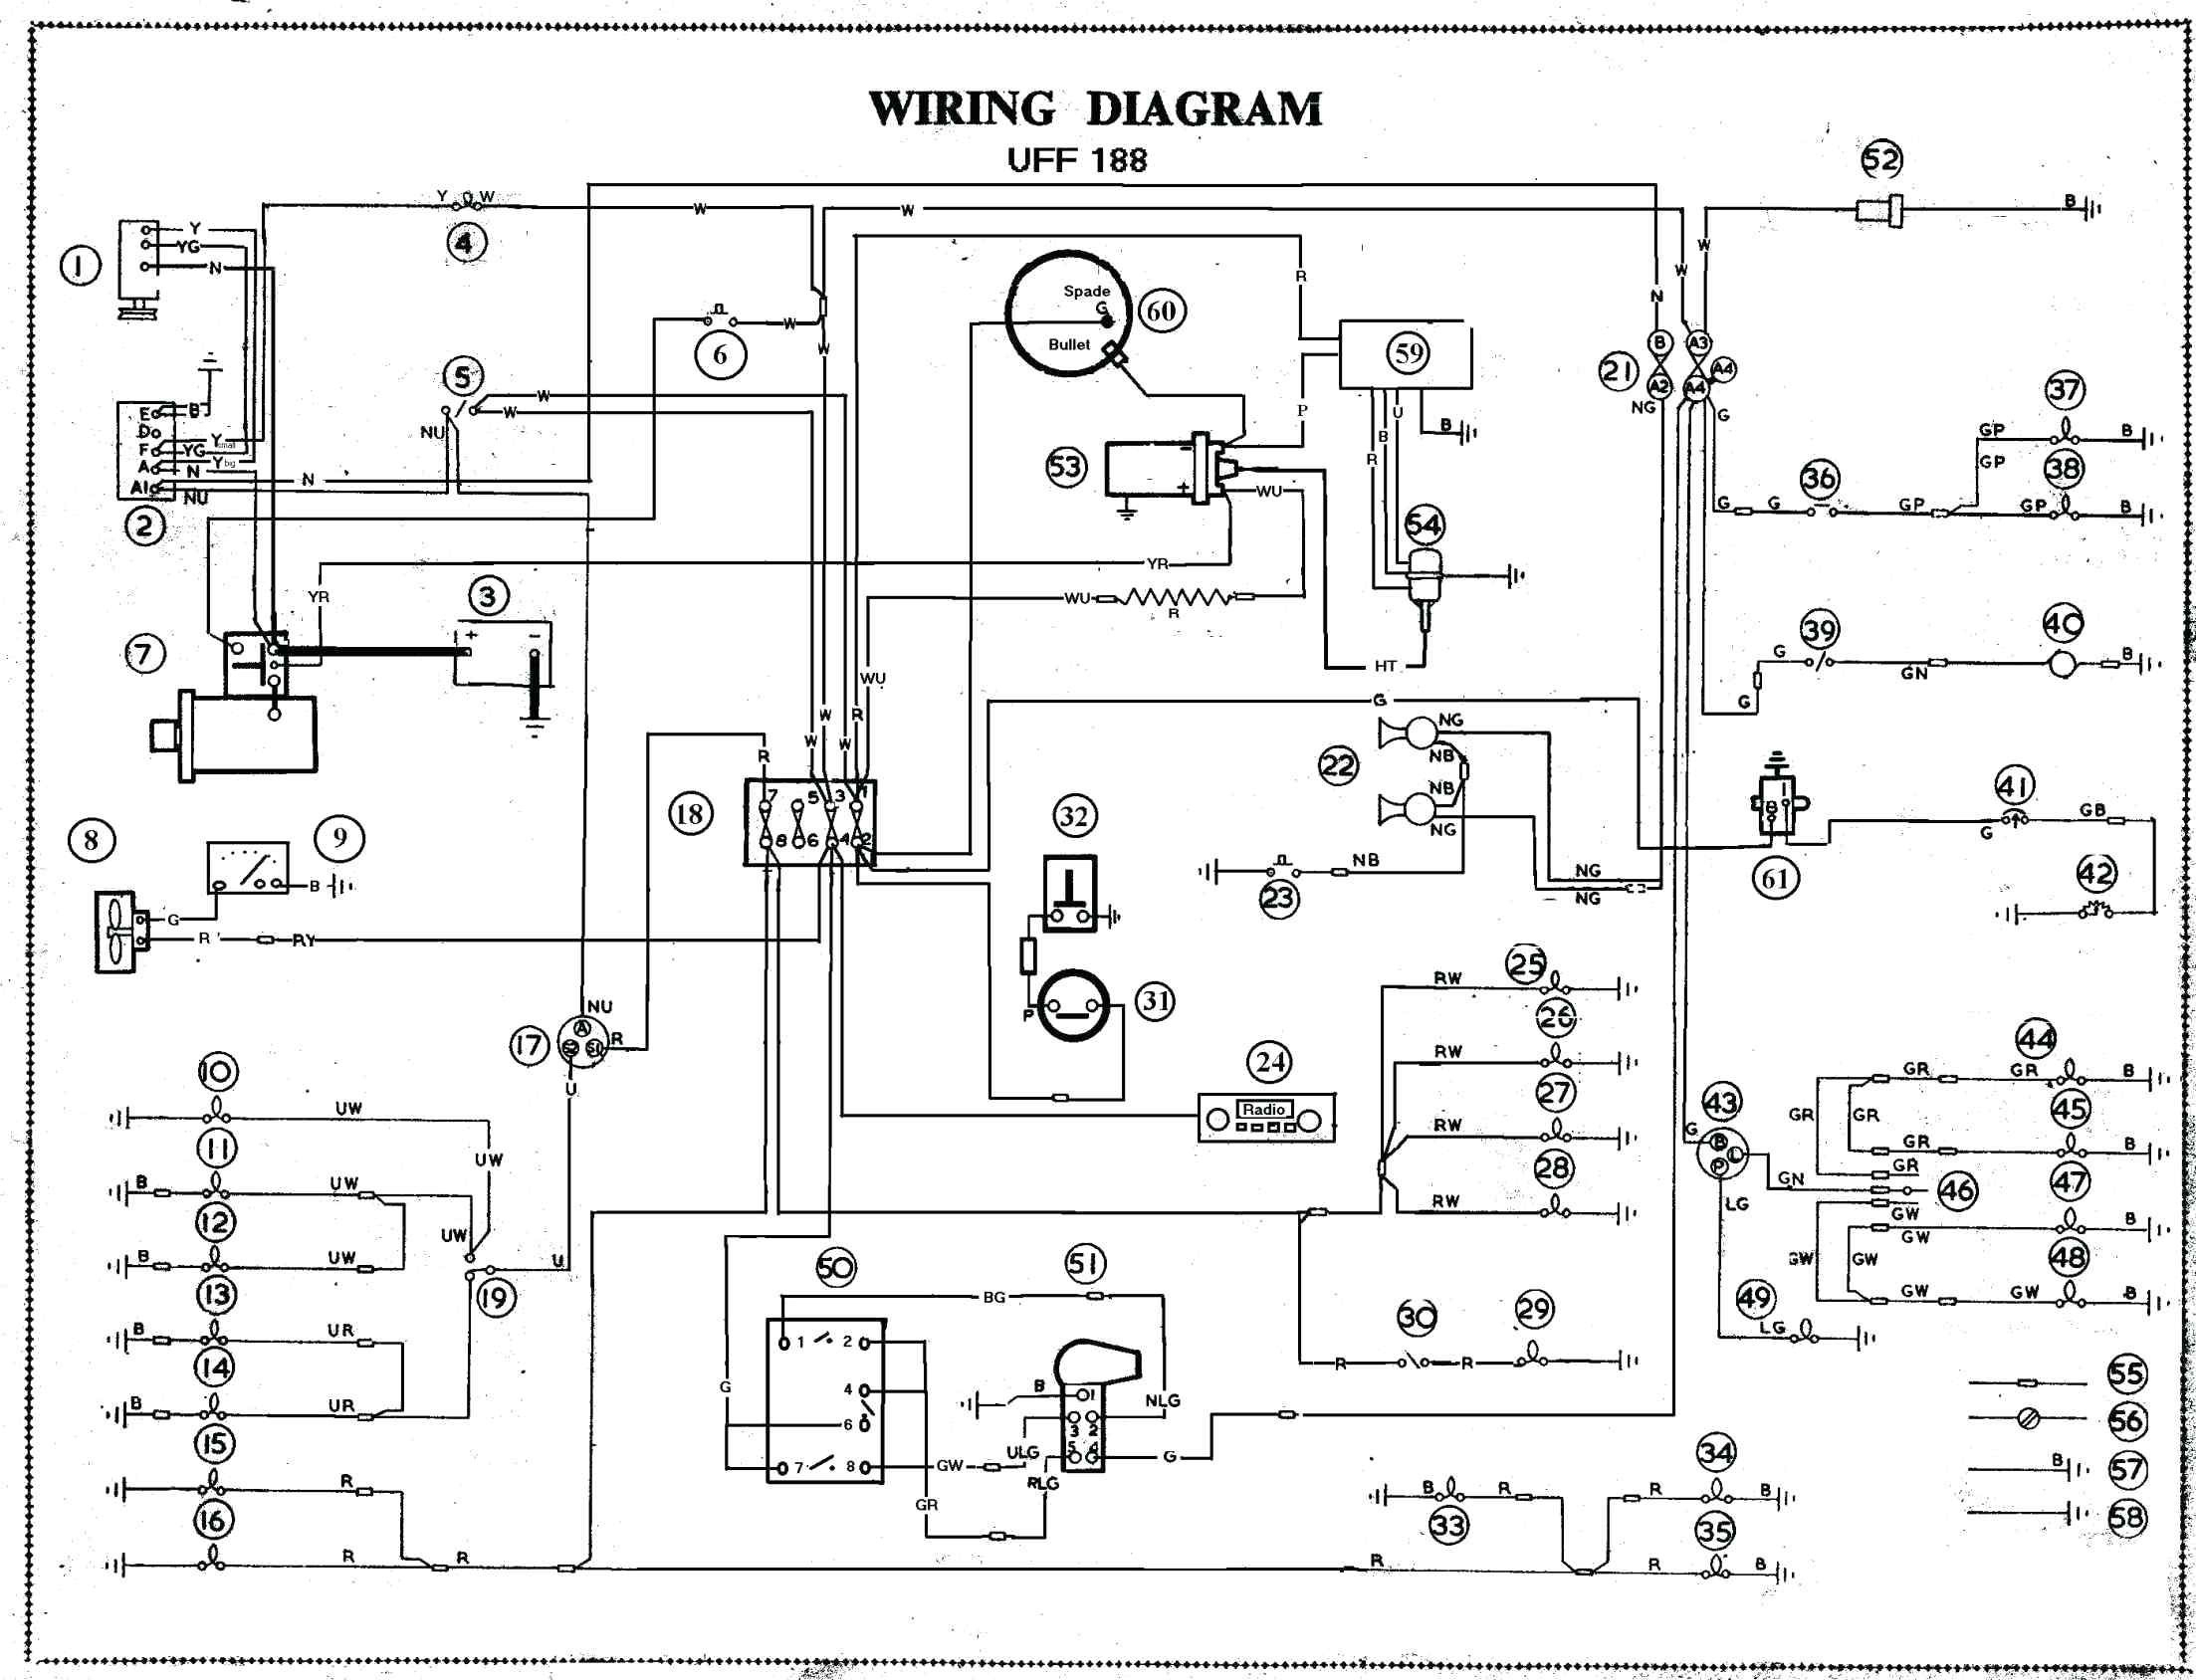 Get Aircraft Wiring Diagram software Sample